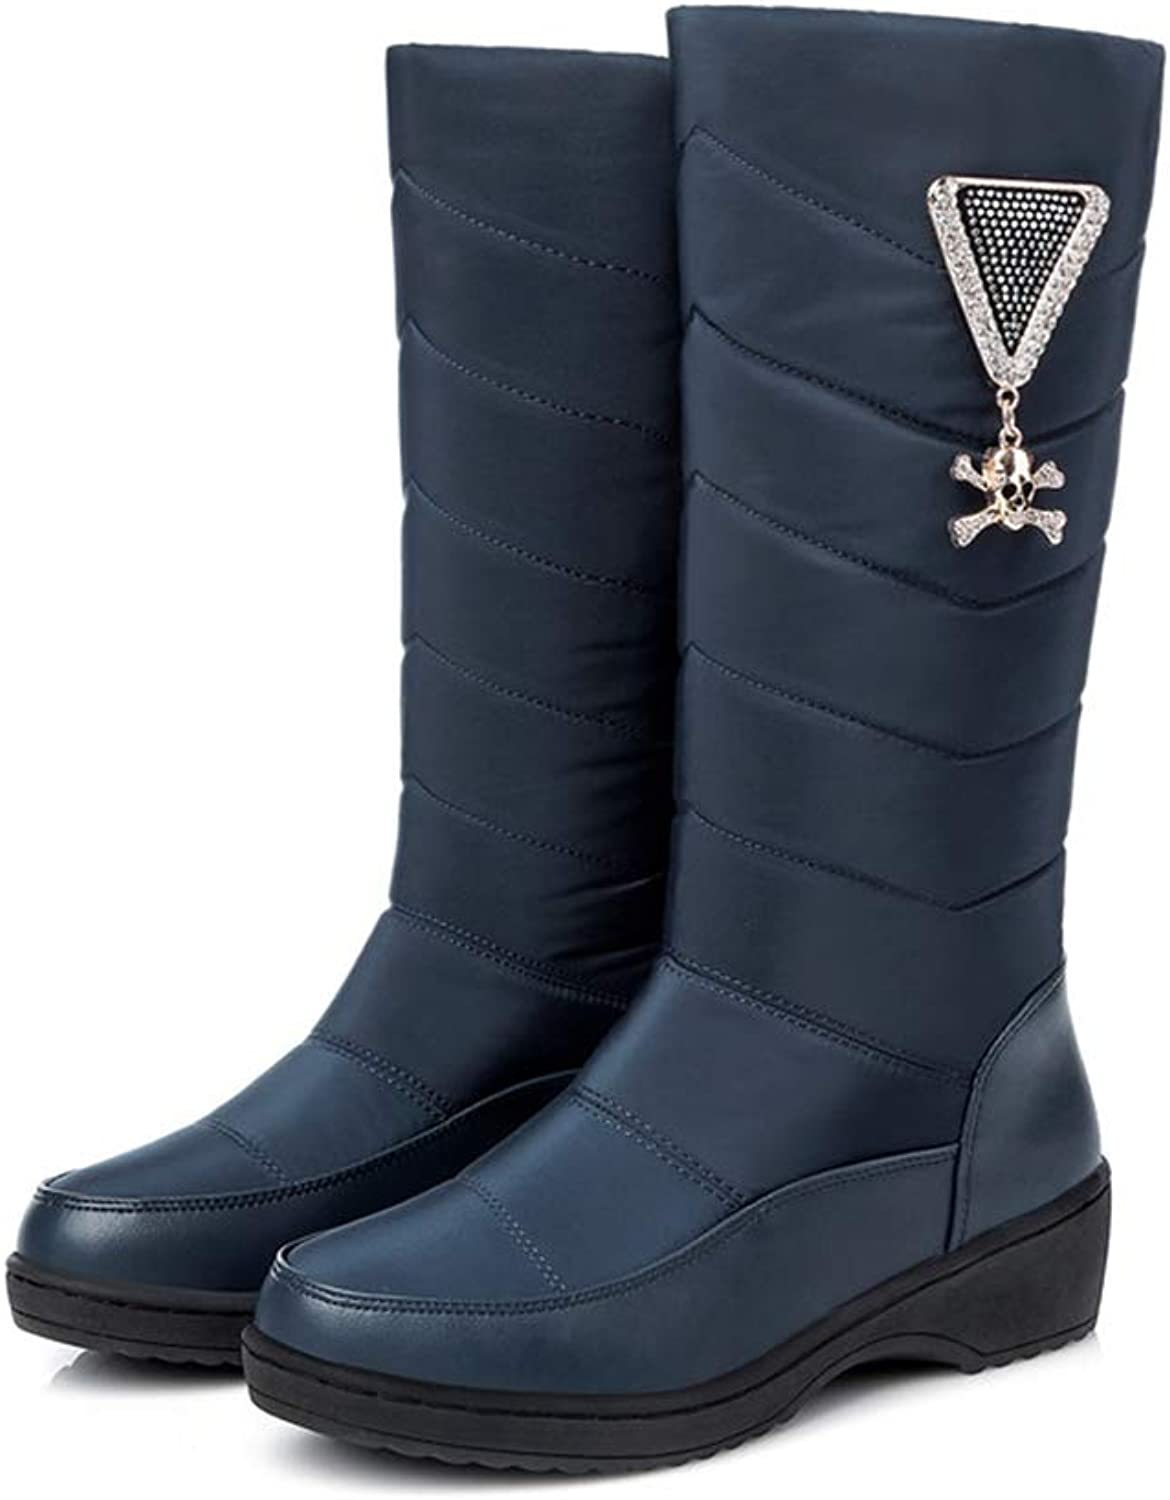 LVYING Mid Calf Boots for Women Fashion Winter Warm Platform Down Waterproof Snow Boots